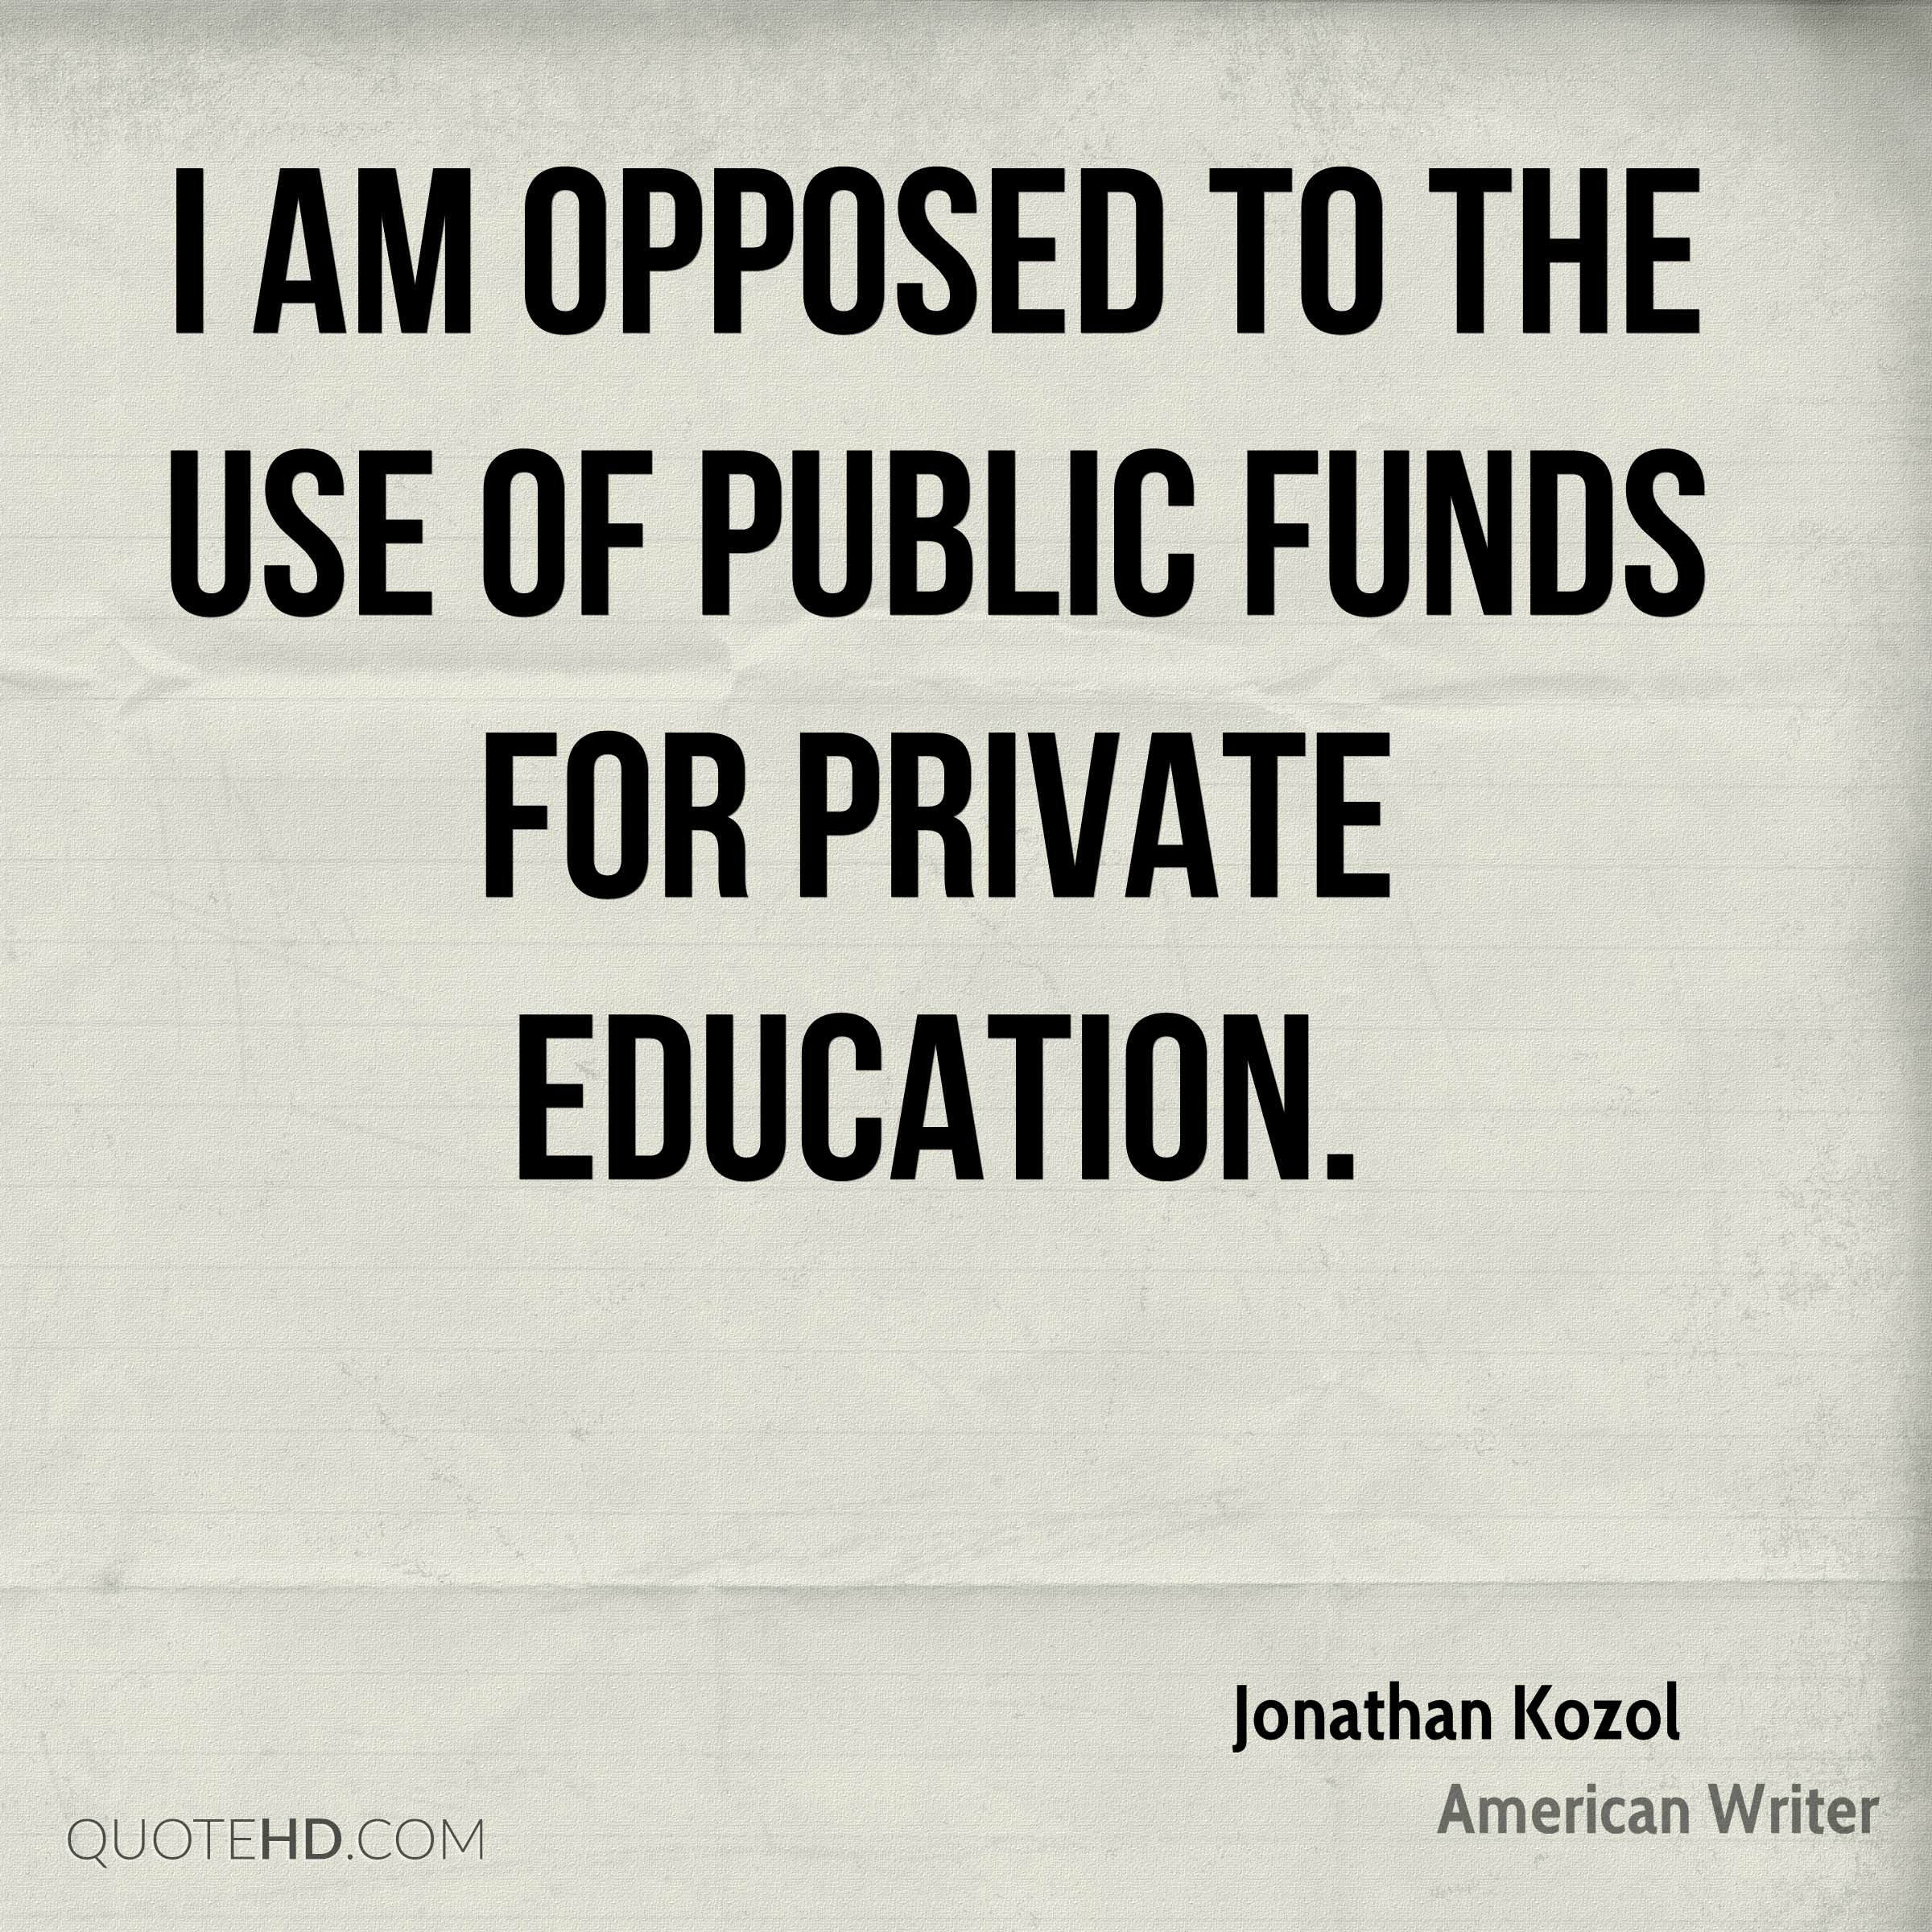 I am opposed to the use of public funds for private education.